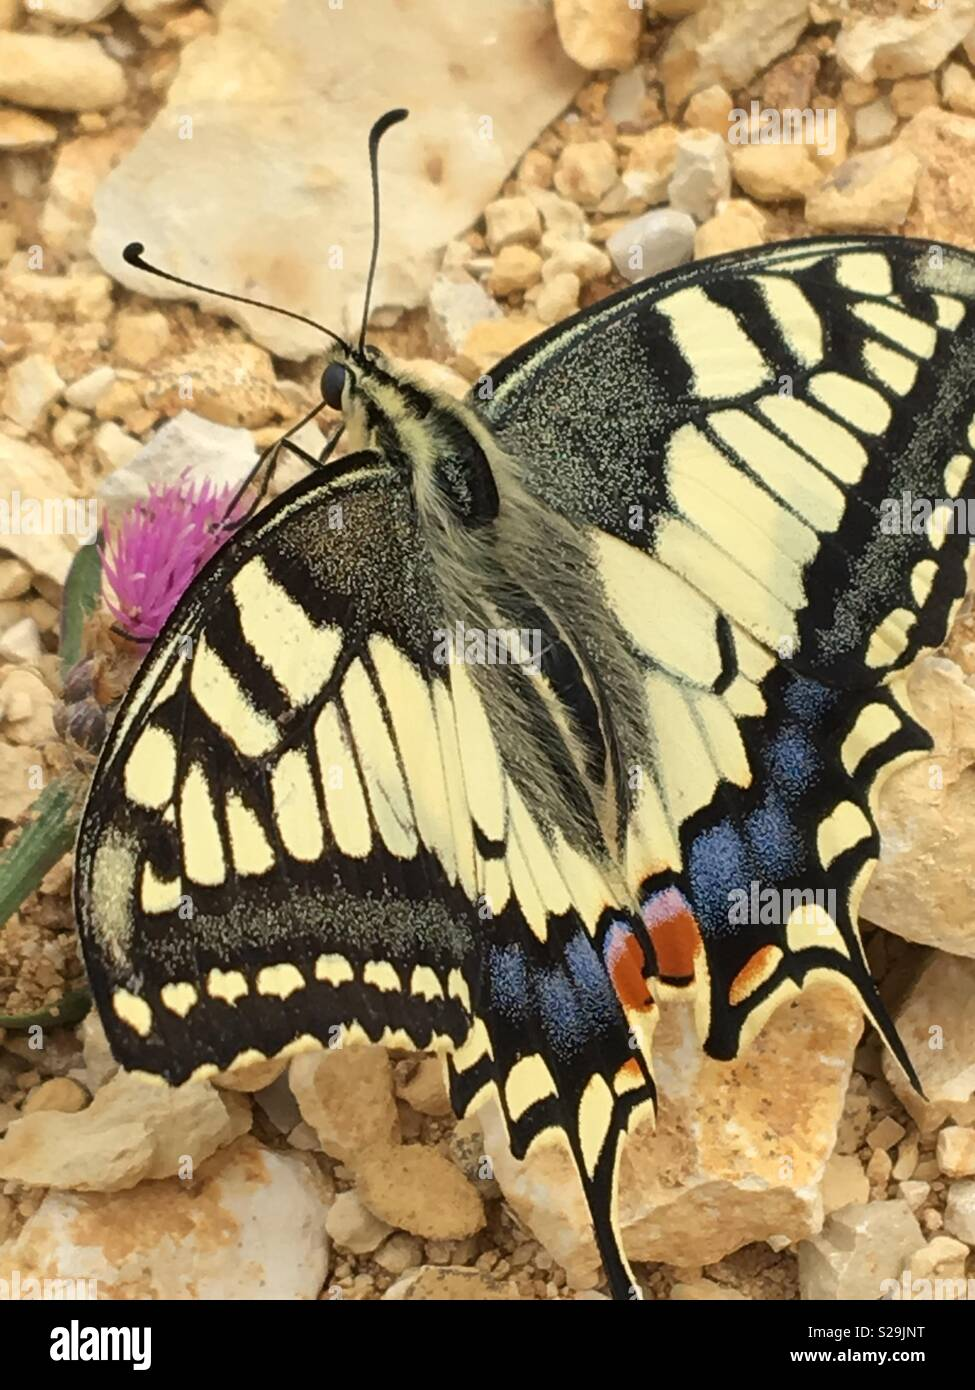 Swallowtail butterfly feeding on nectar on gravel - Stock Image